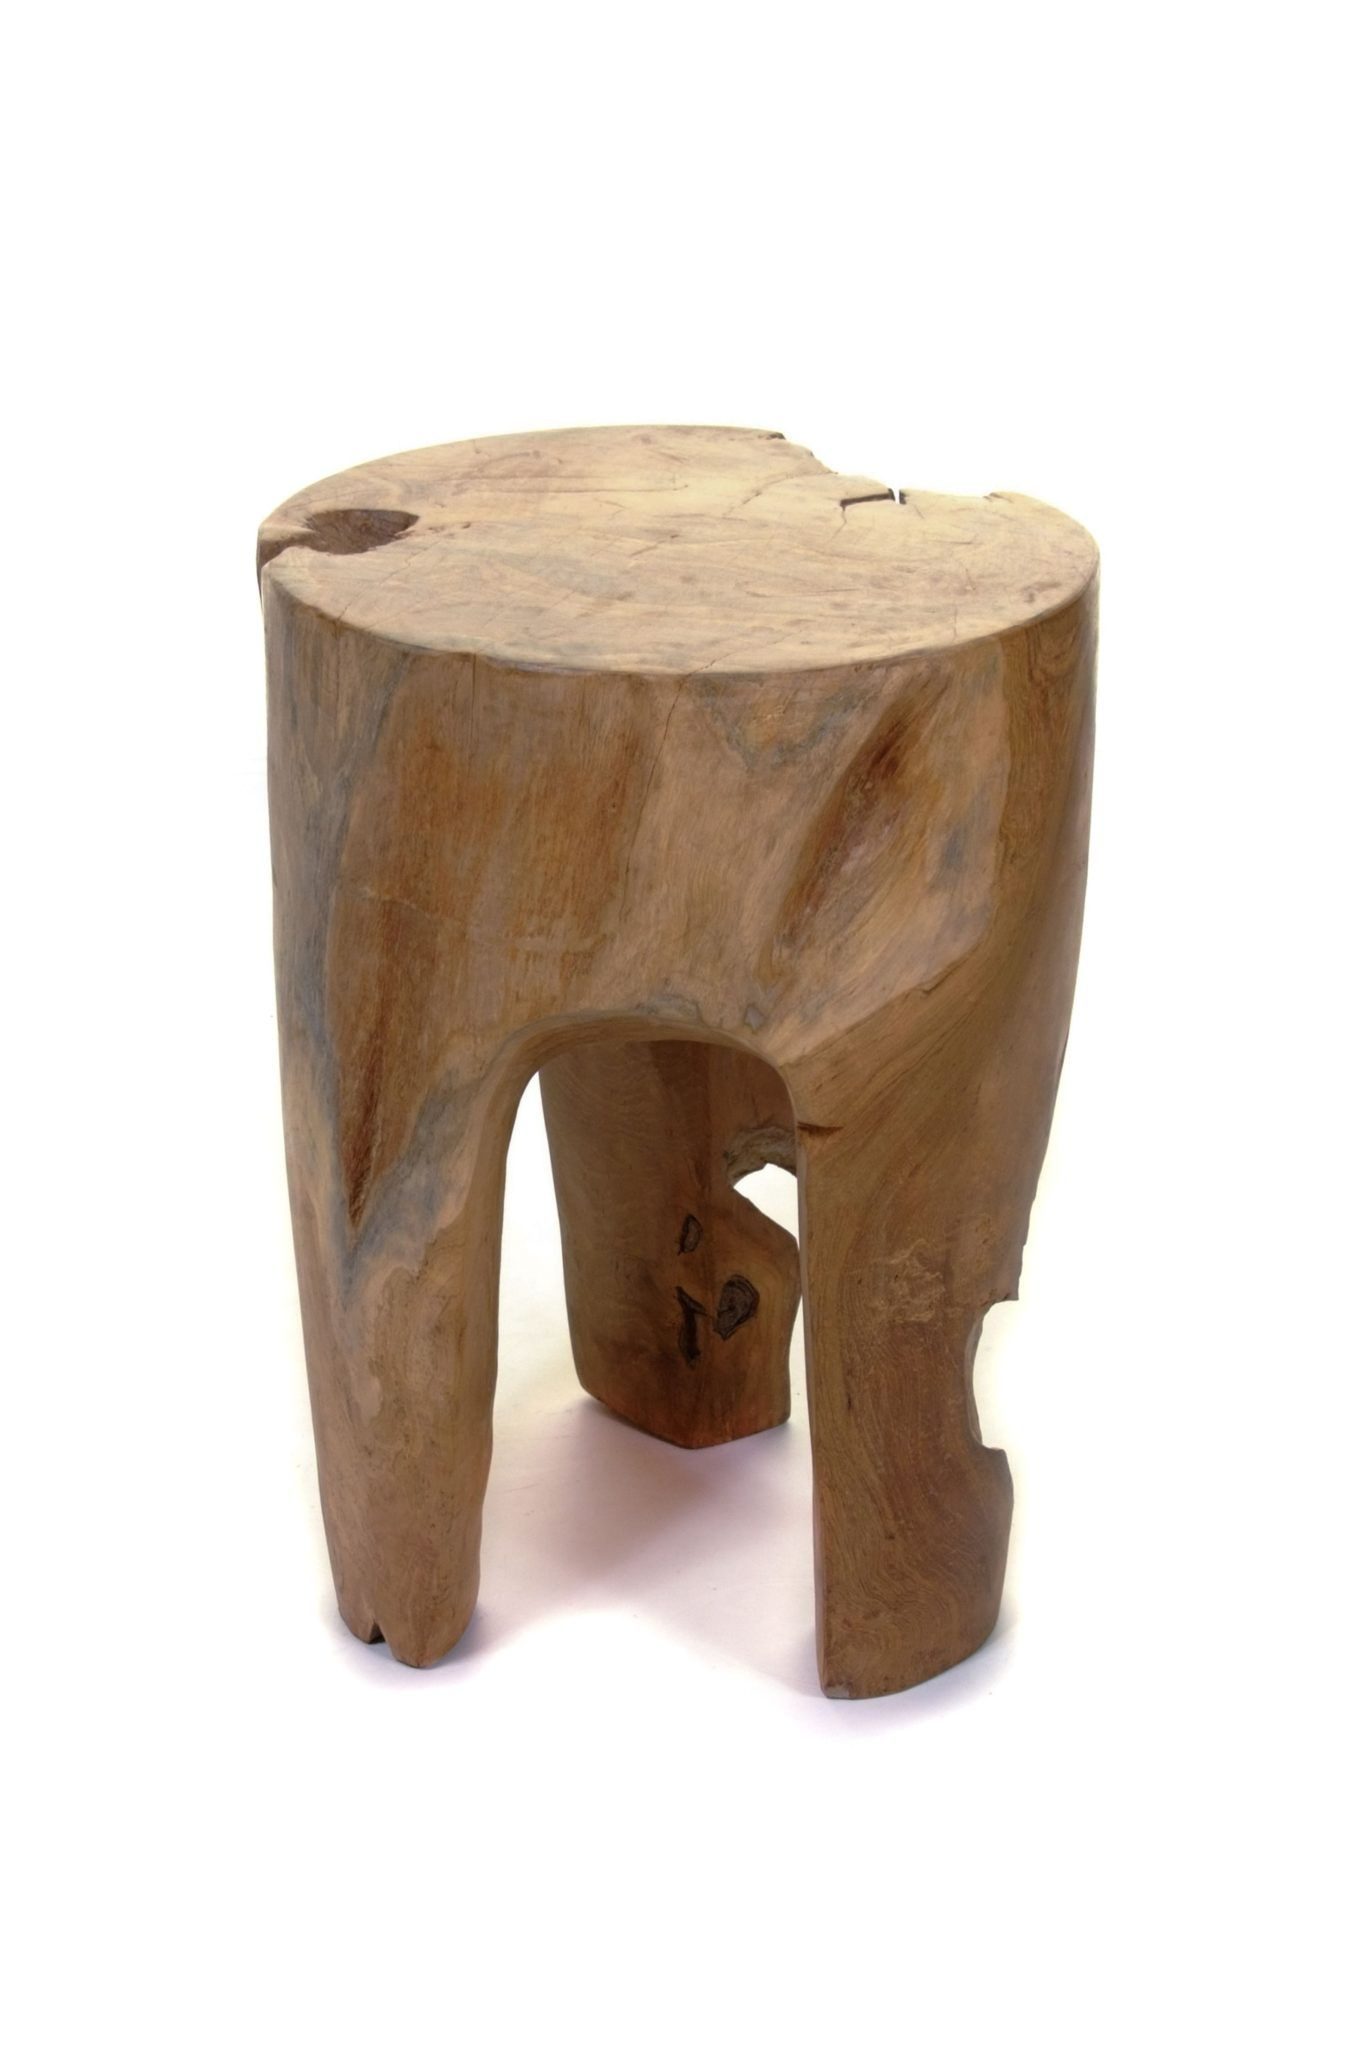 teak-root-round-stool-swatch